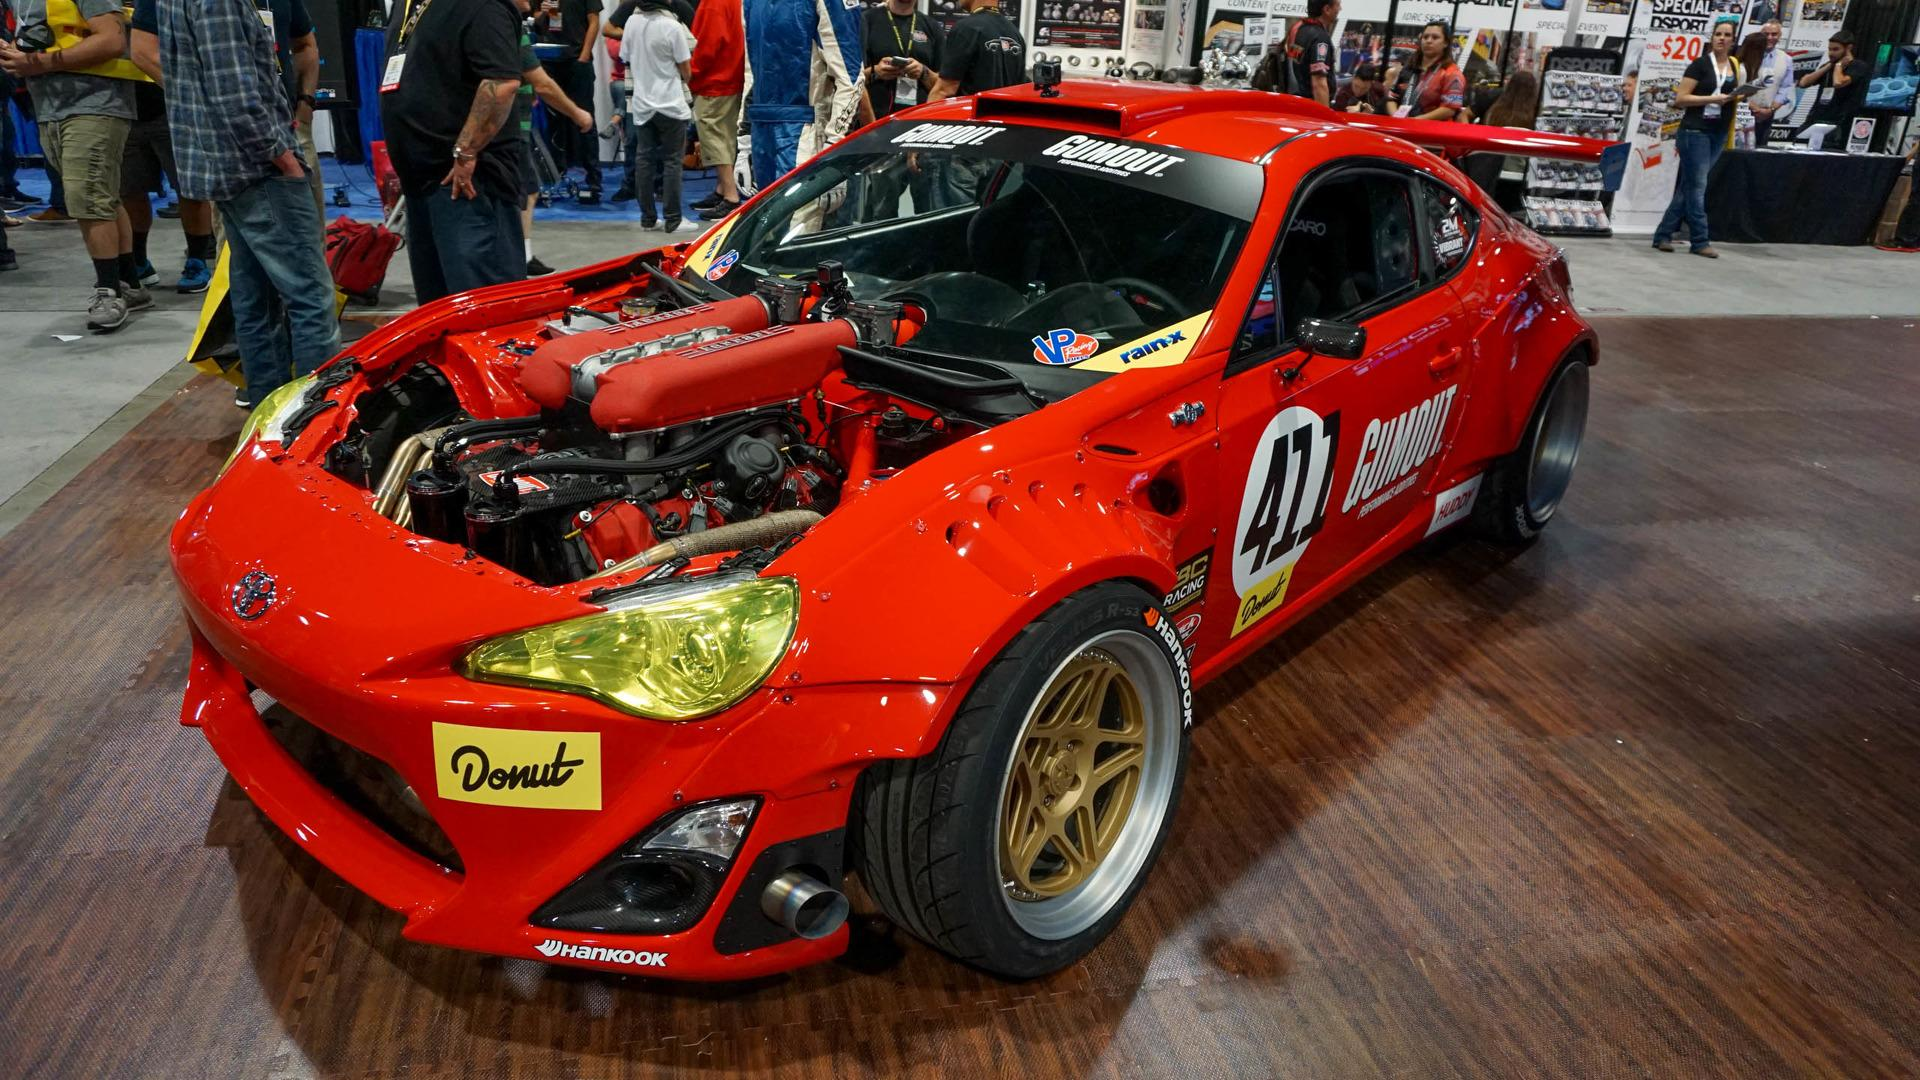 Widebody Subaru BRZ With LS3 V8 Engine Is Over The Top Tuning